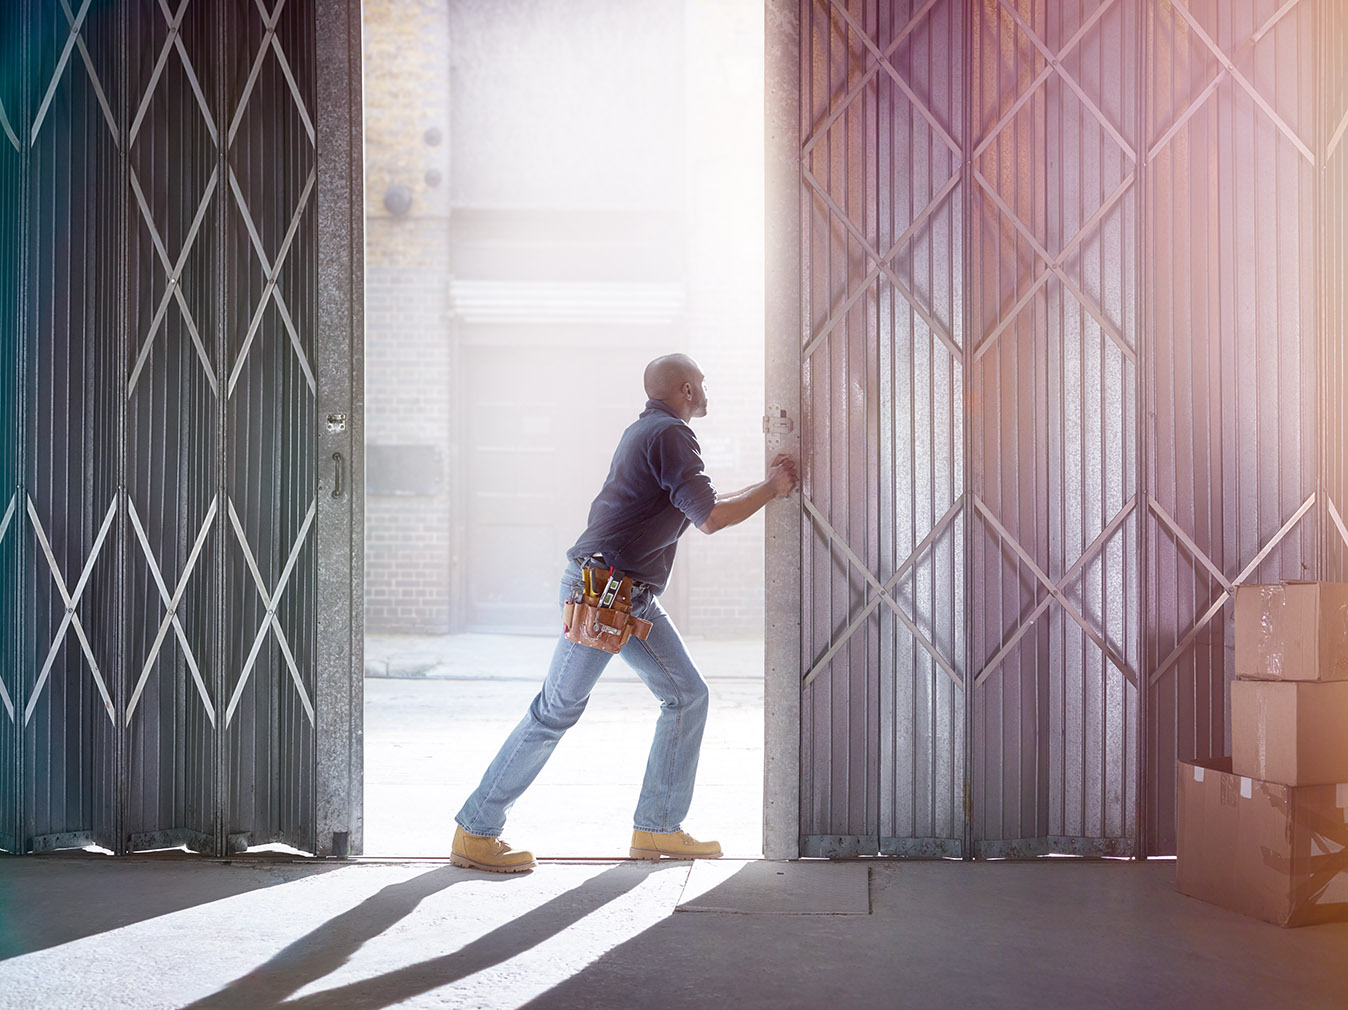 Image of a man opening the door of a warehouse